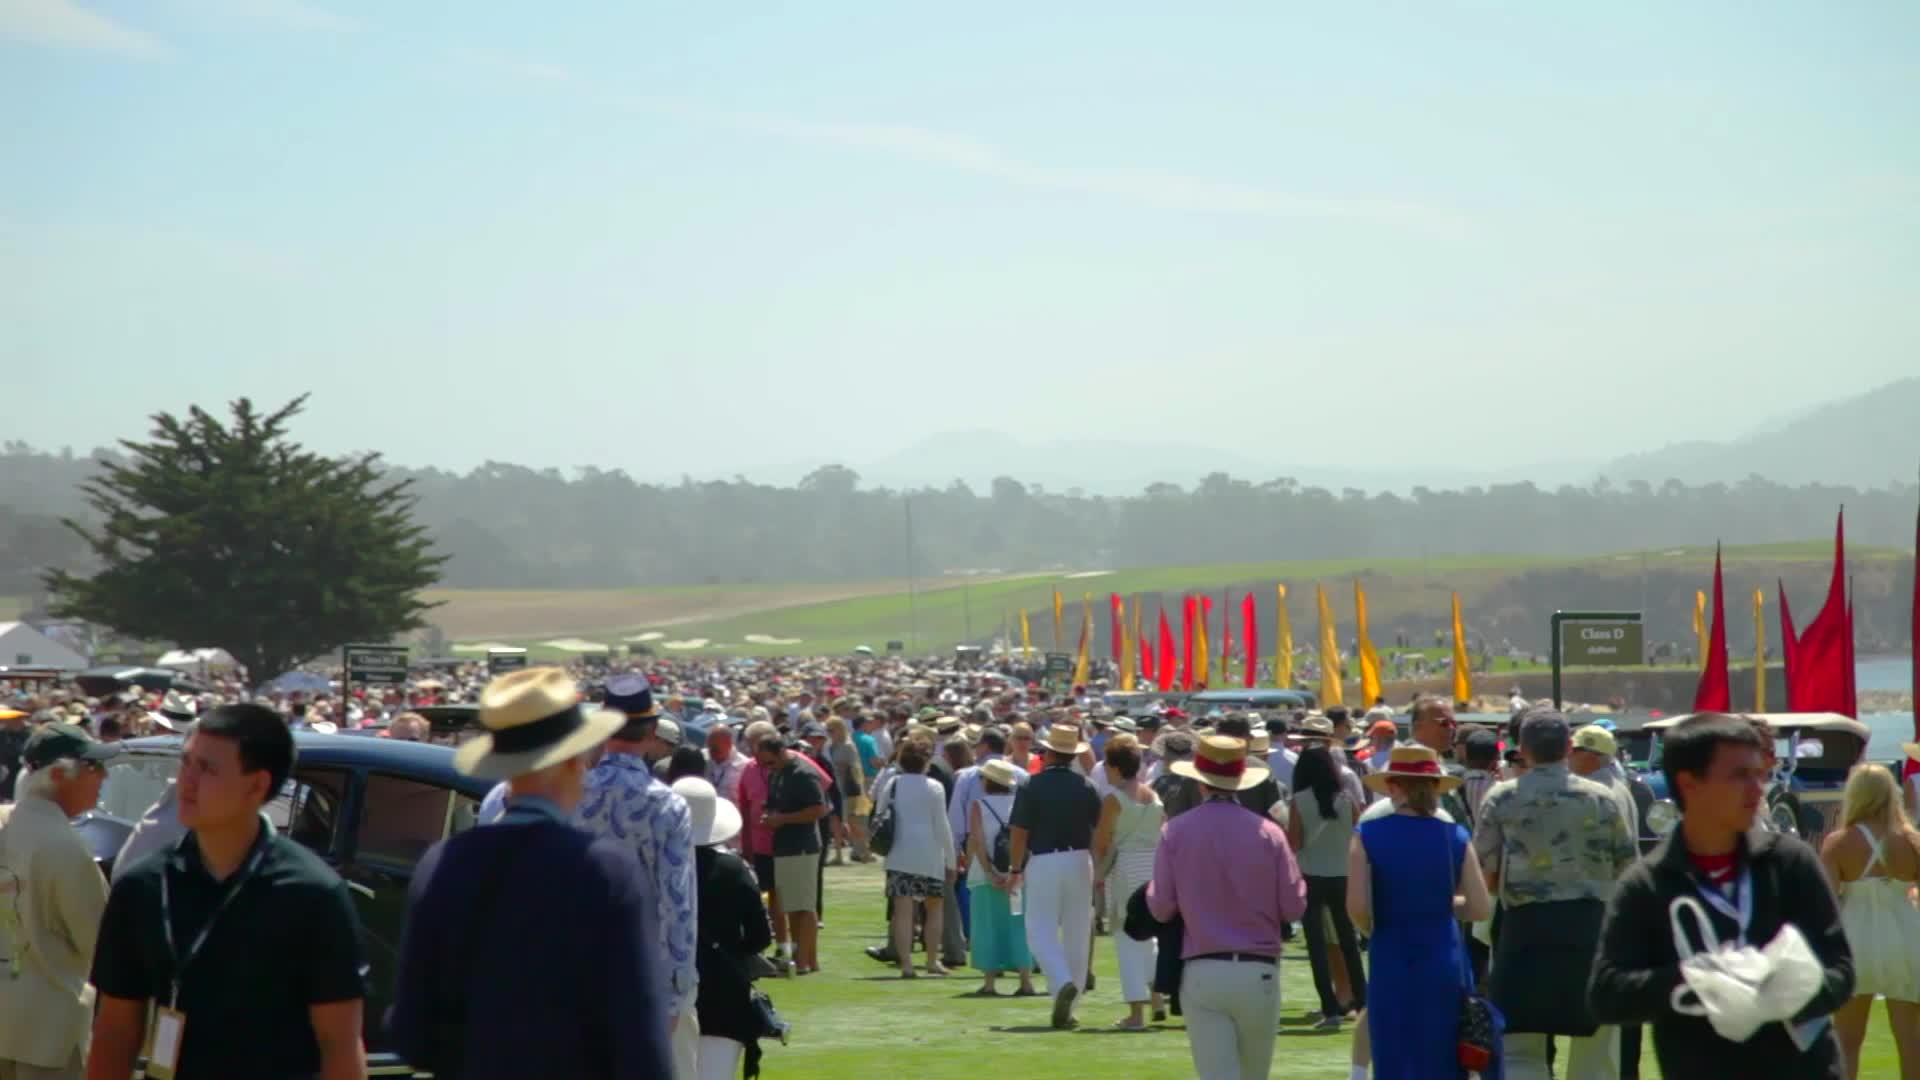 Pebble Beach Concours d'Elegance Celebrates 66 Years of Charitable Giving